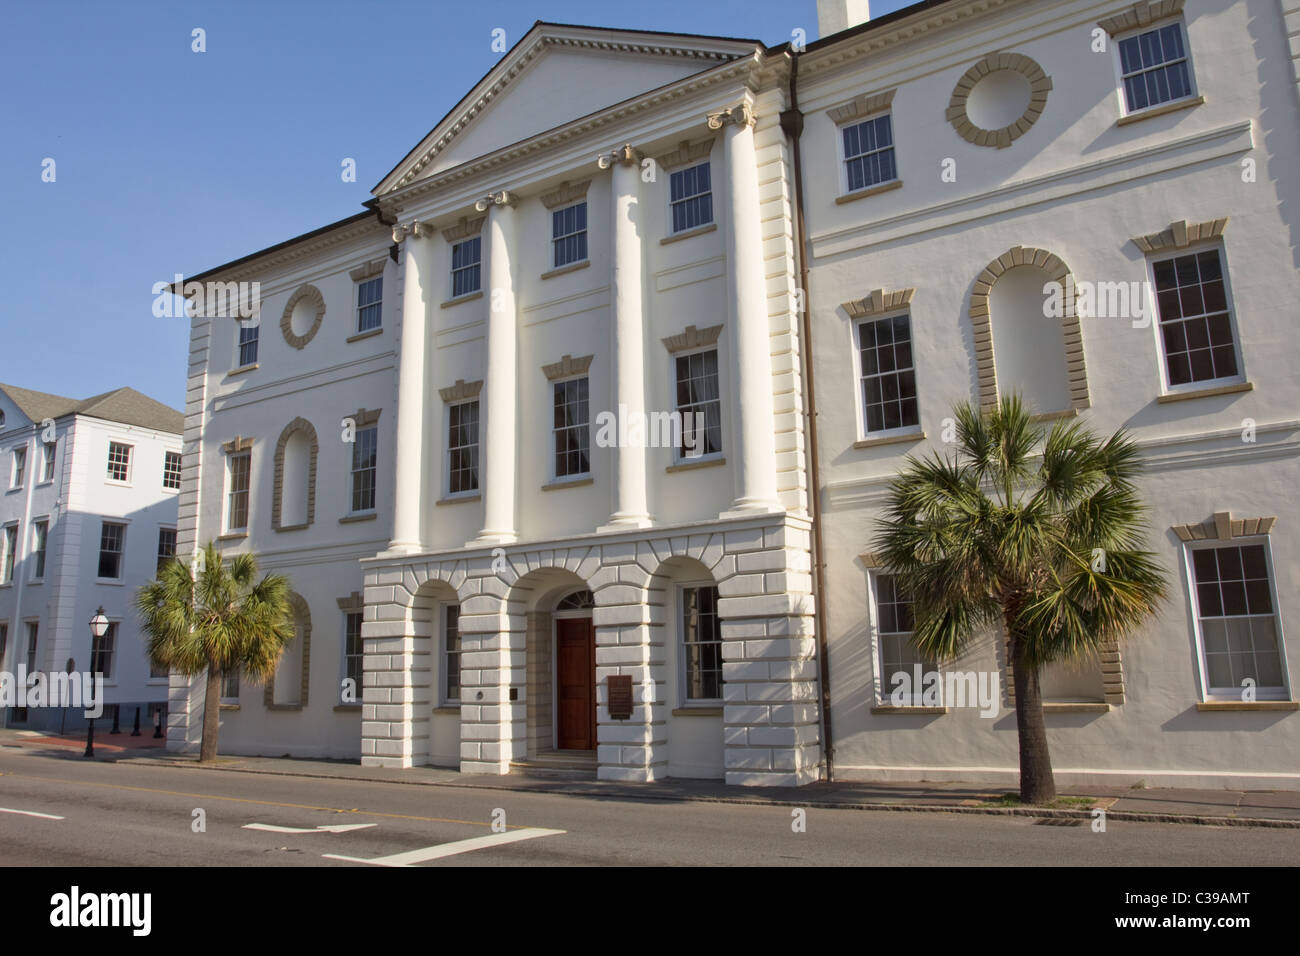 County of Charleston Historic Courthouse 84 Broad Street Charleston South Carolina - Stock Image